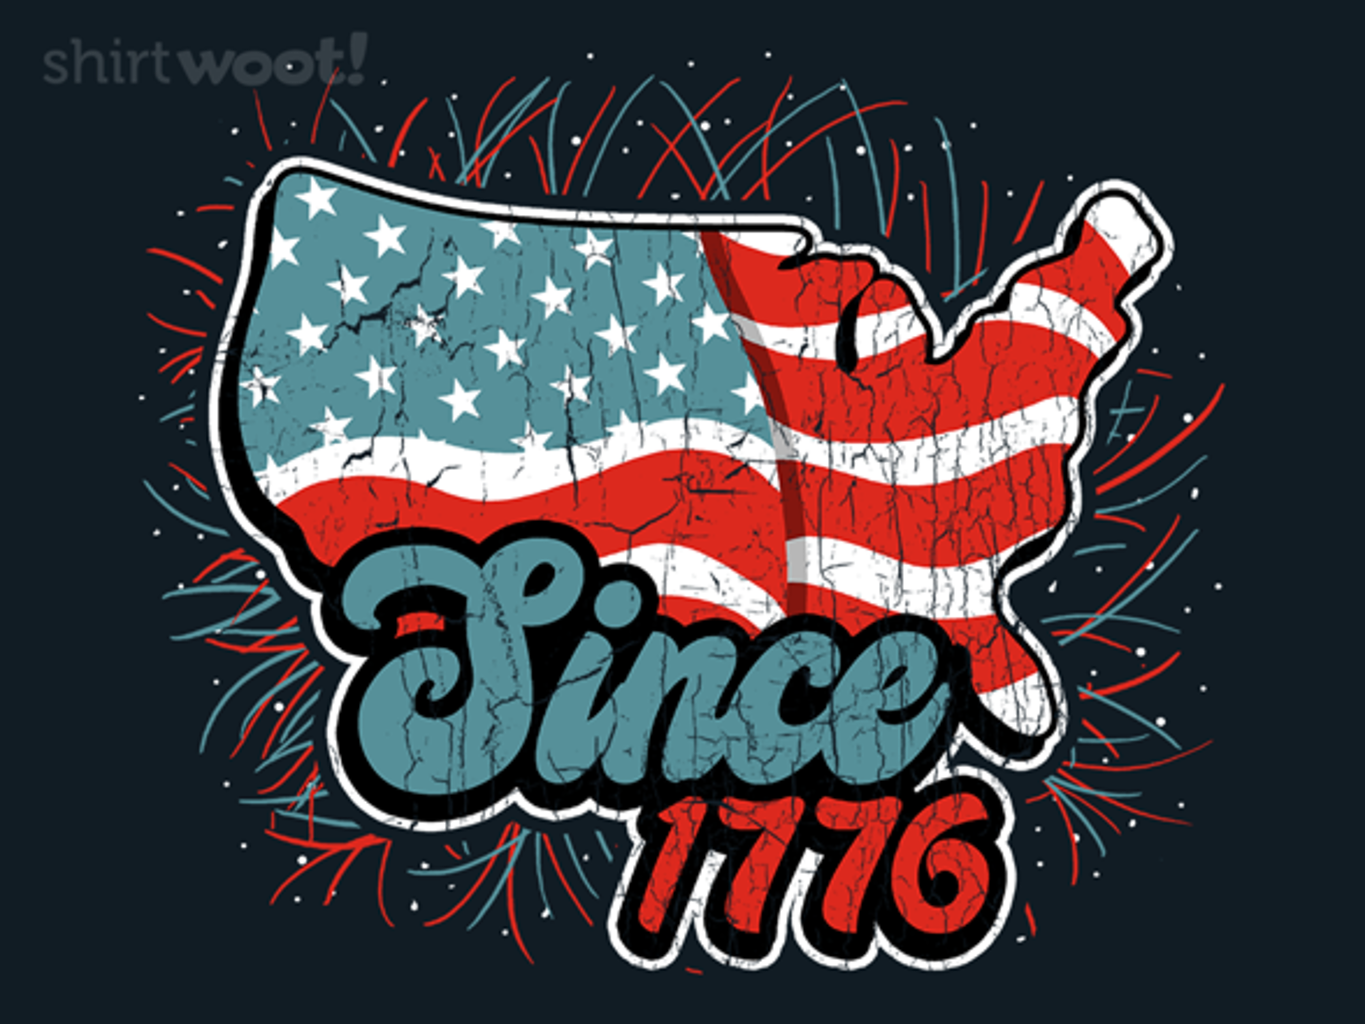 Woot!: Since 1776